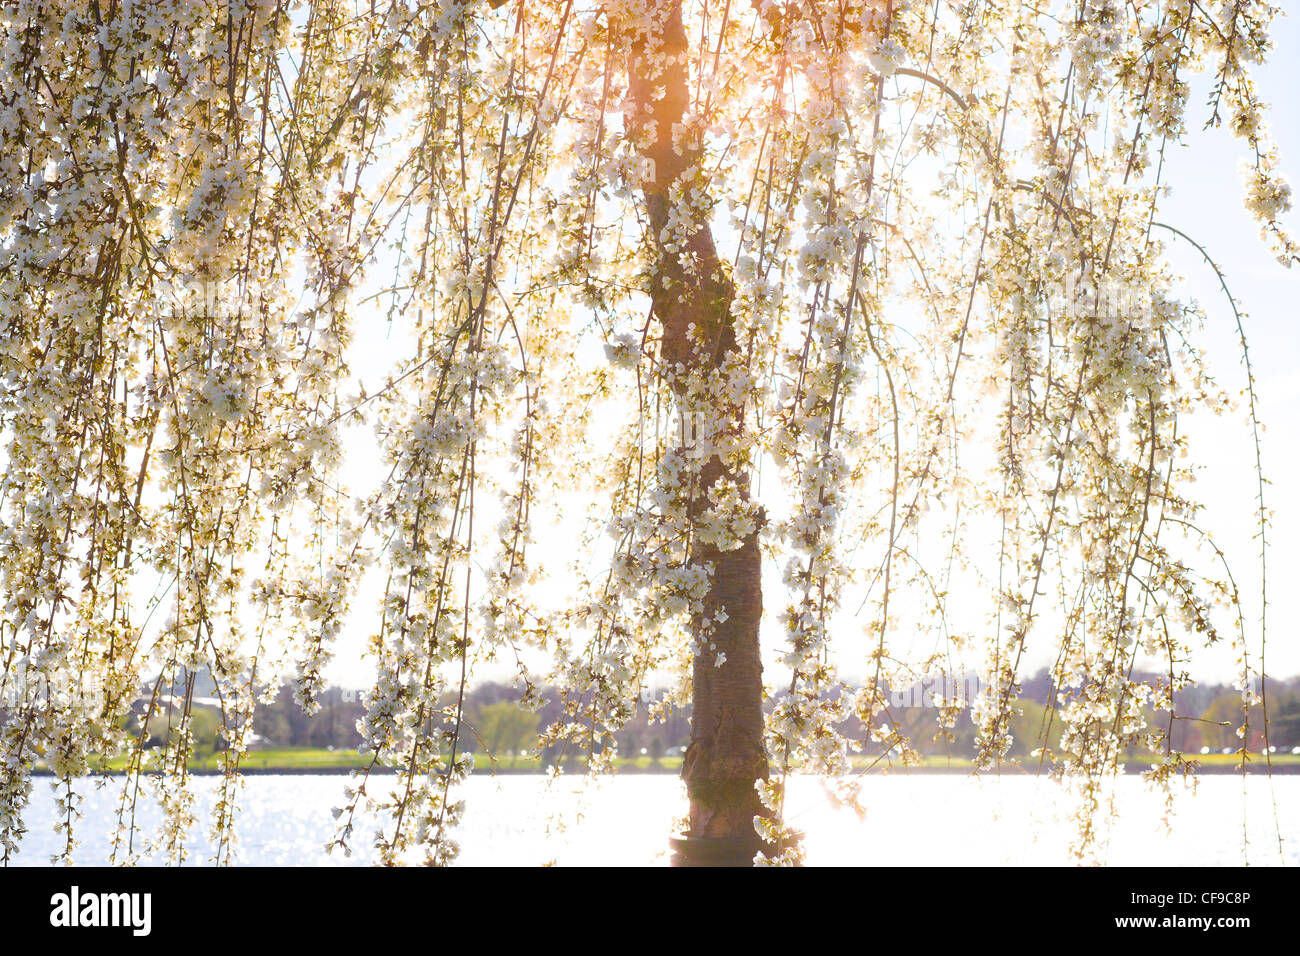 Potomac River Washington DC. Sunlight shining through the branches of a Weeping Cherry blossom tree in full peak - Stock Image